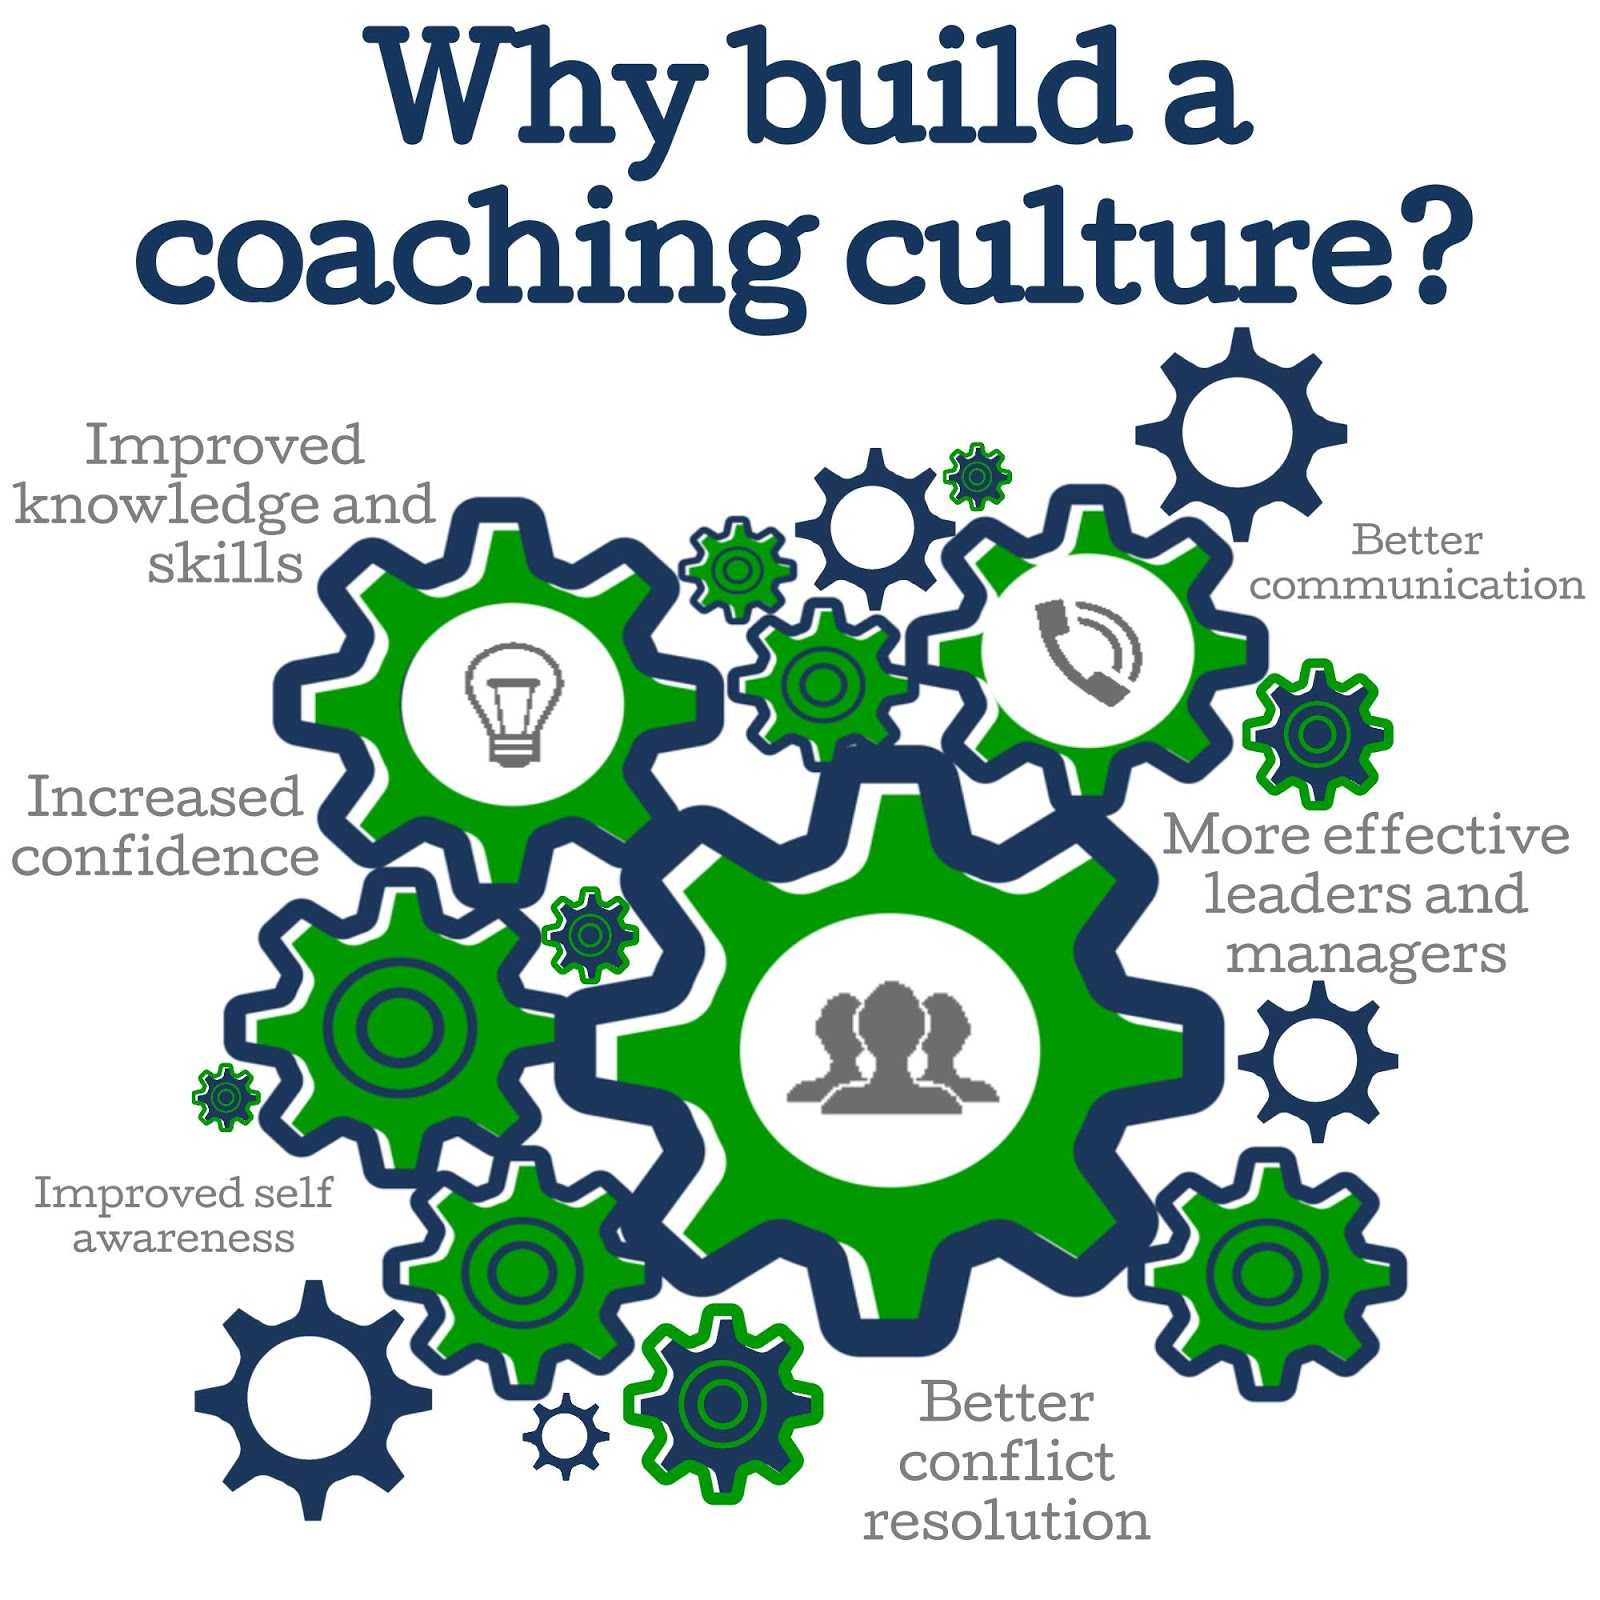 The Benefits of Building a Coaching Culture in Your Organisation